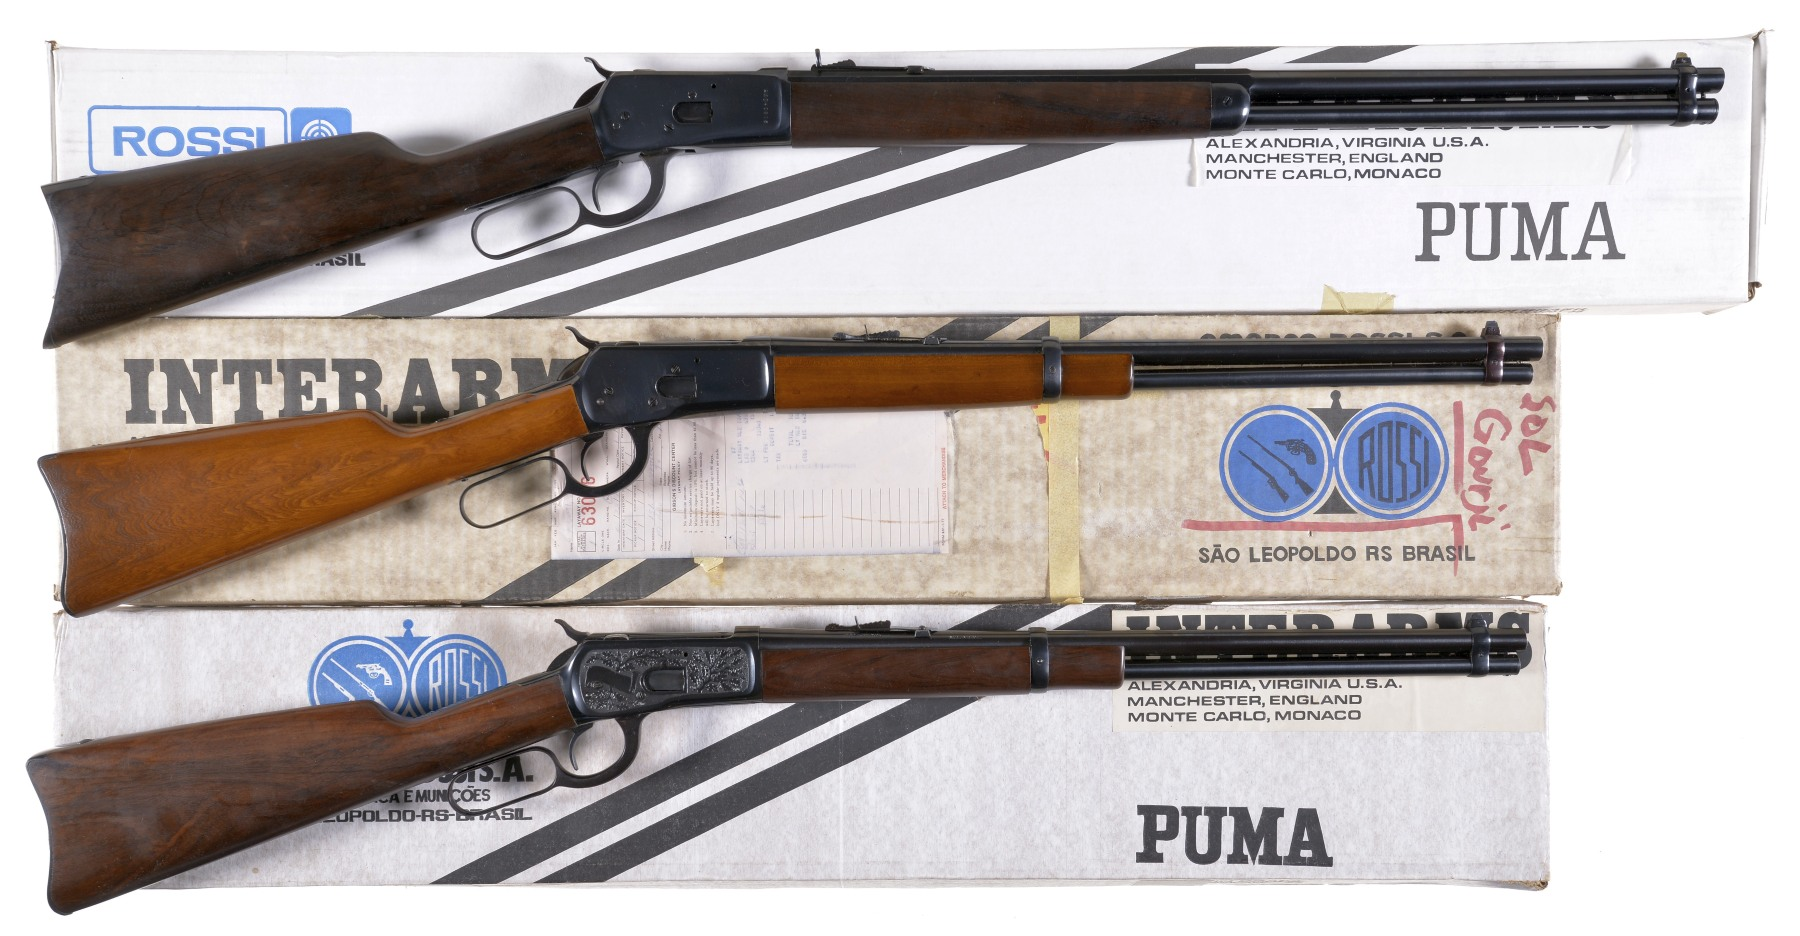 Three Lever Action Long Guns with Boxes -A) Rossi Model 92 Rifle